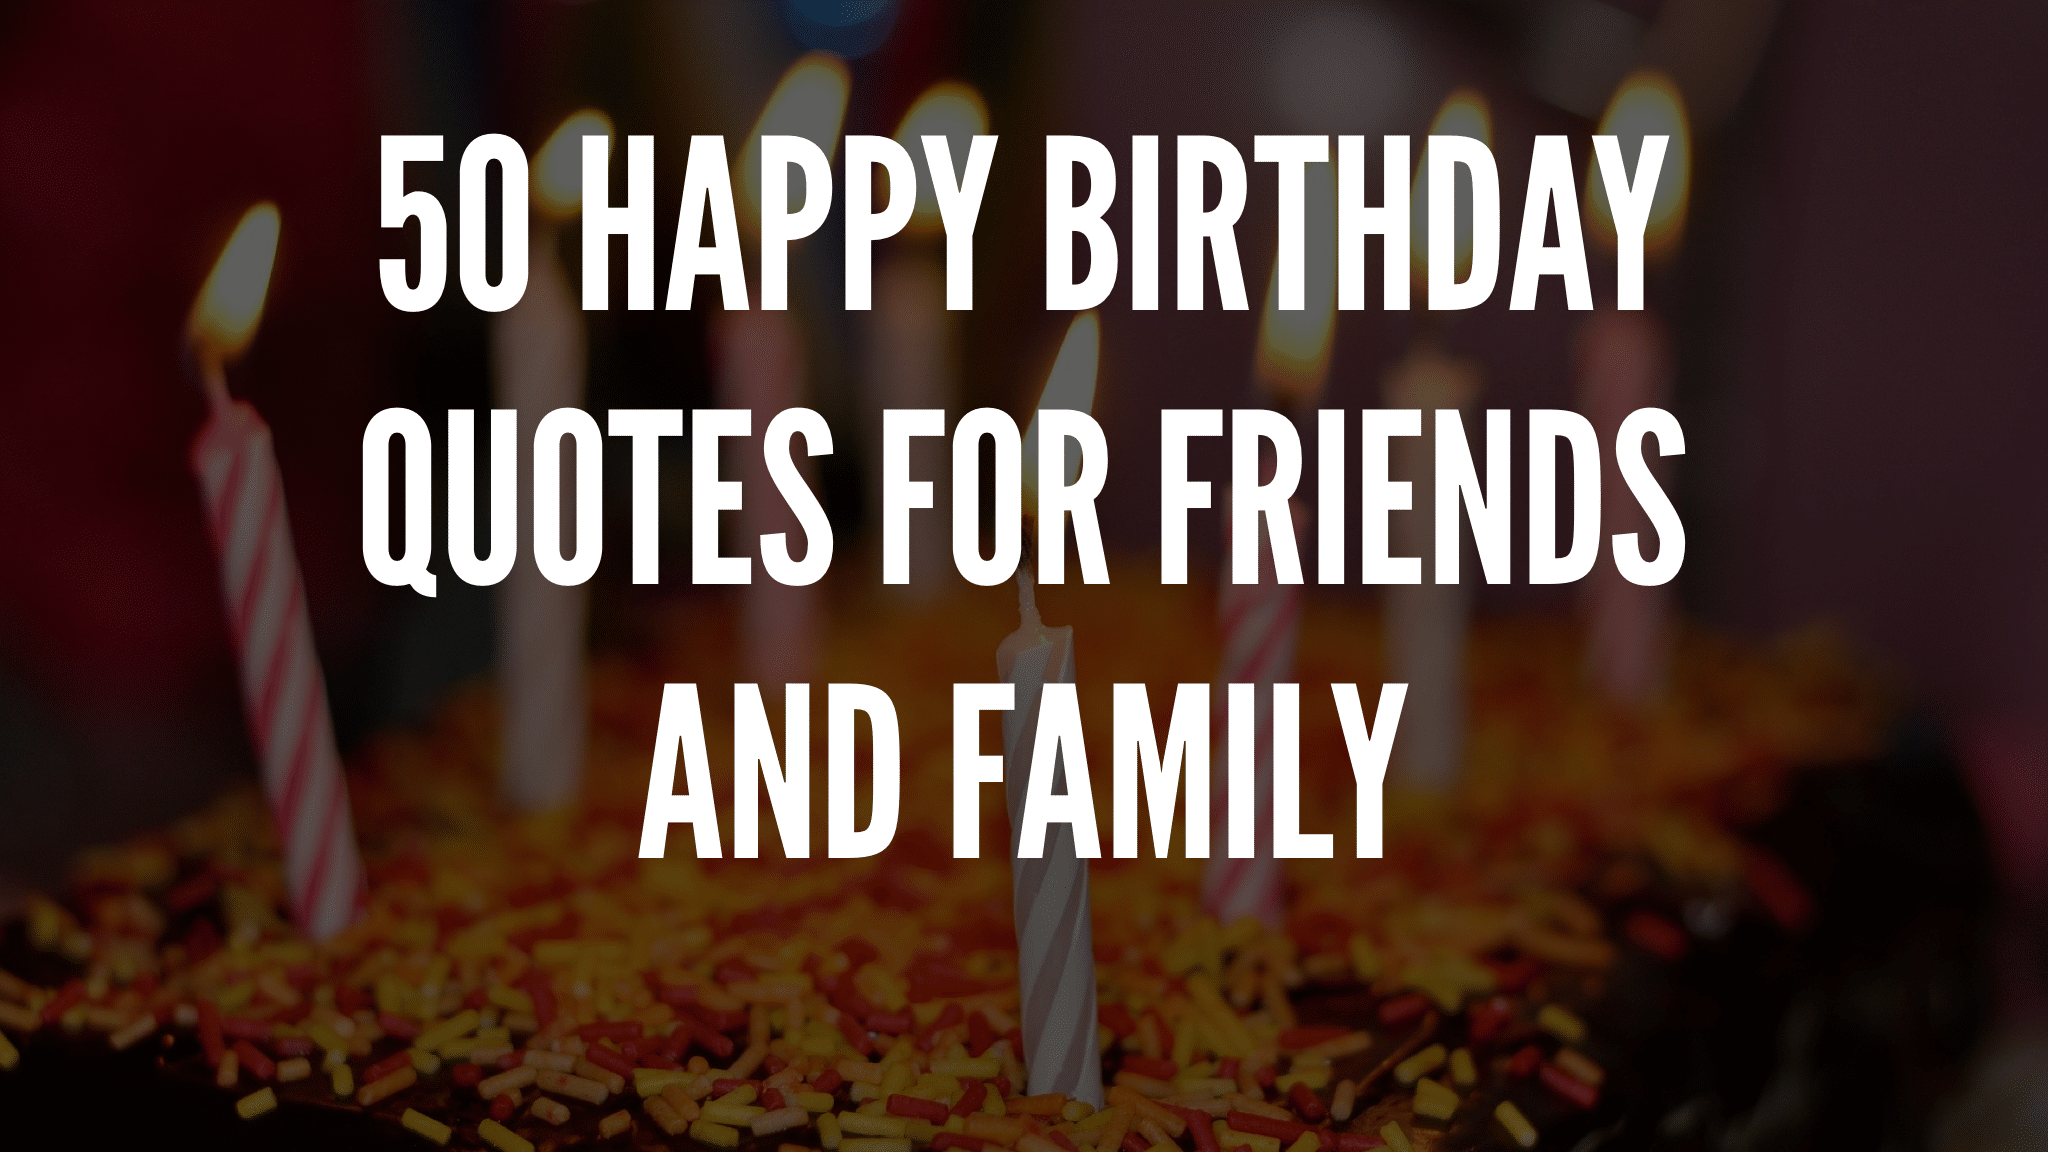 50 Happy Birthday Quotes For Friends And Family